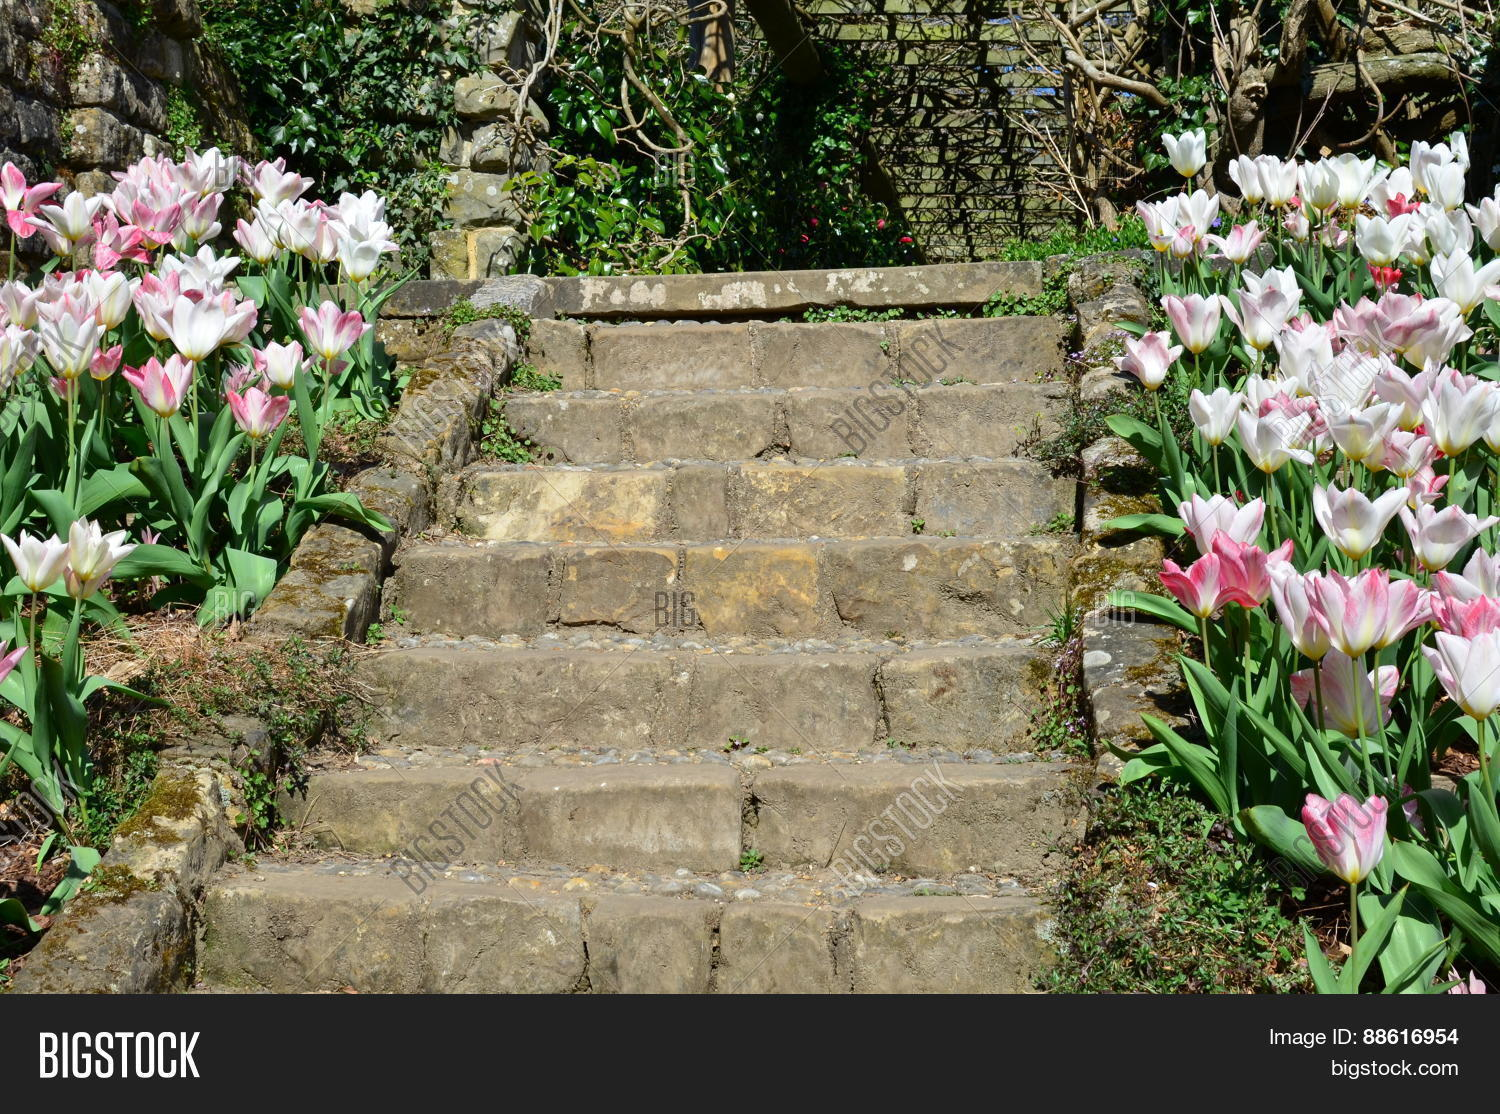 Stone Garden Steps With Flower S On Each Side Image Taken In Spring A English Formal